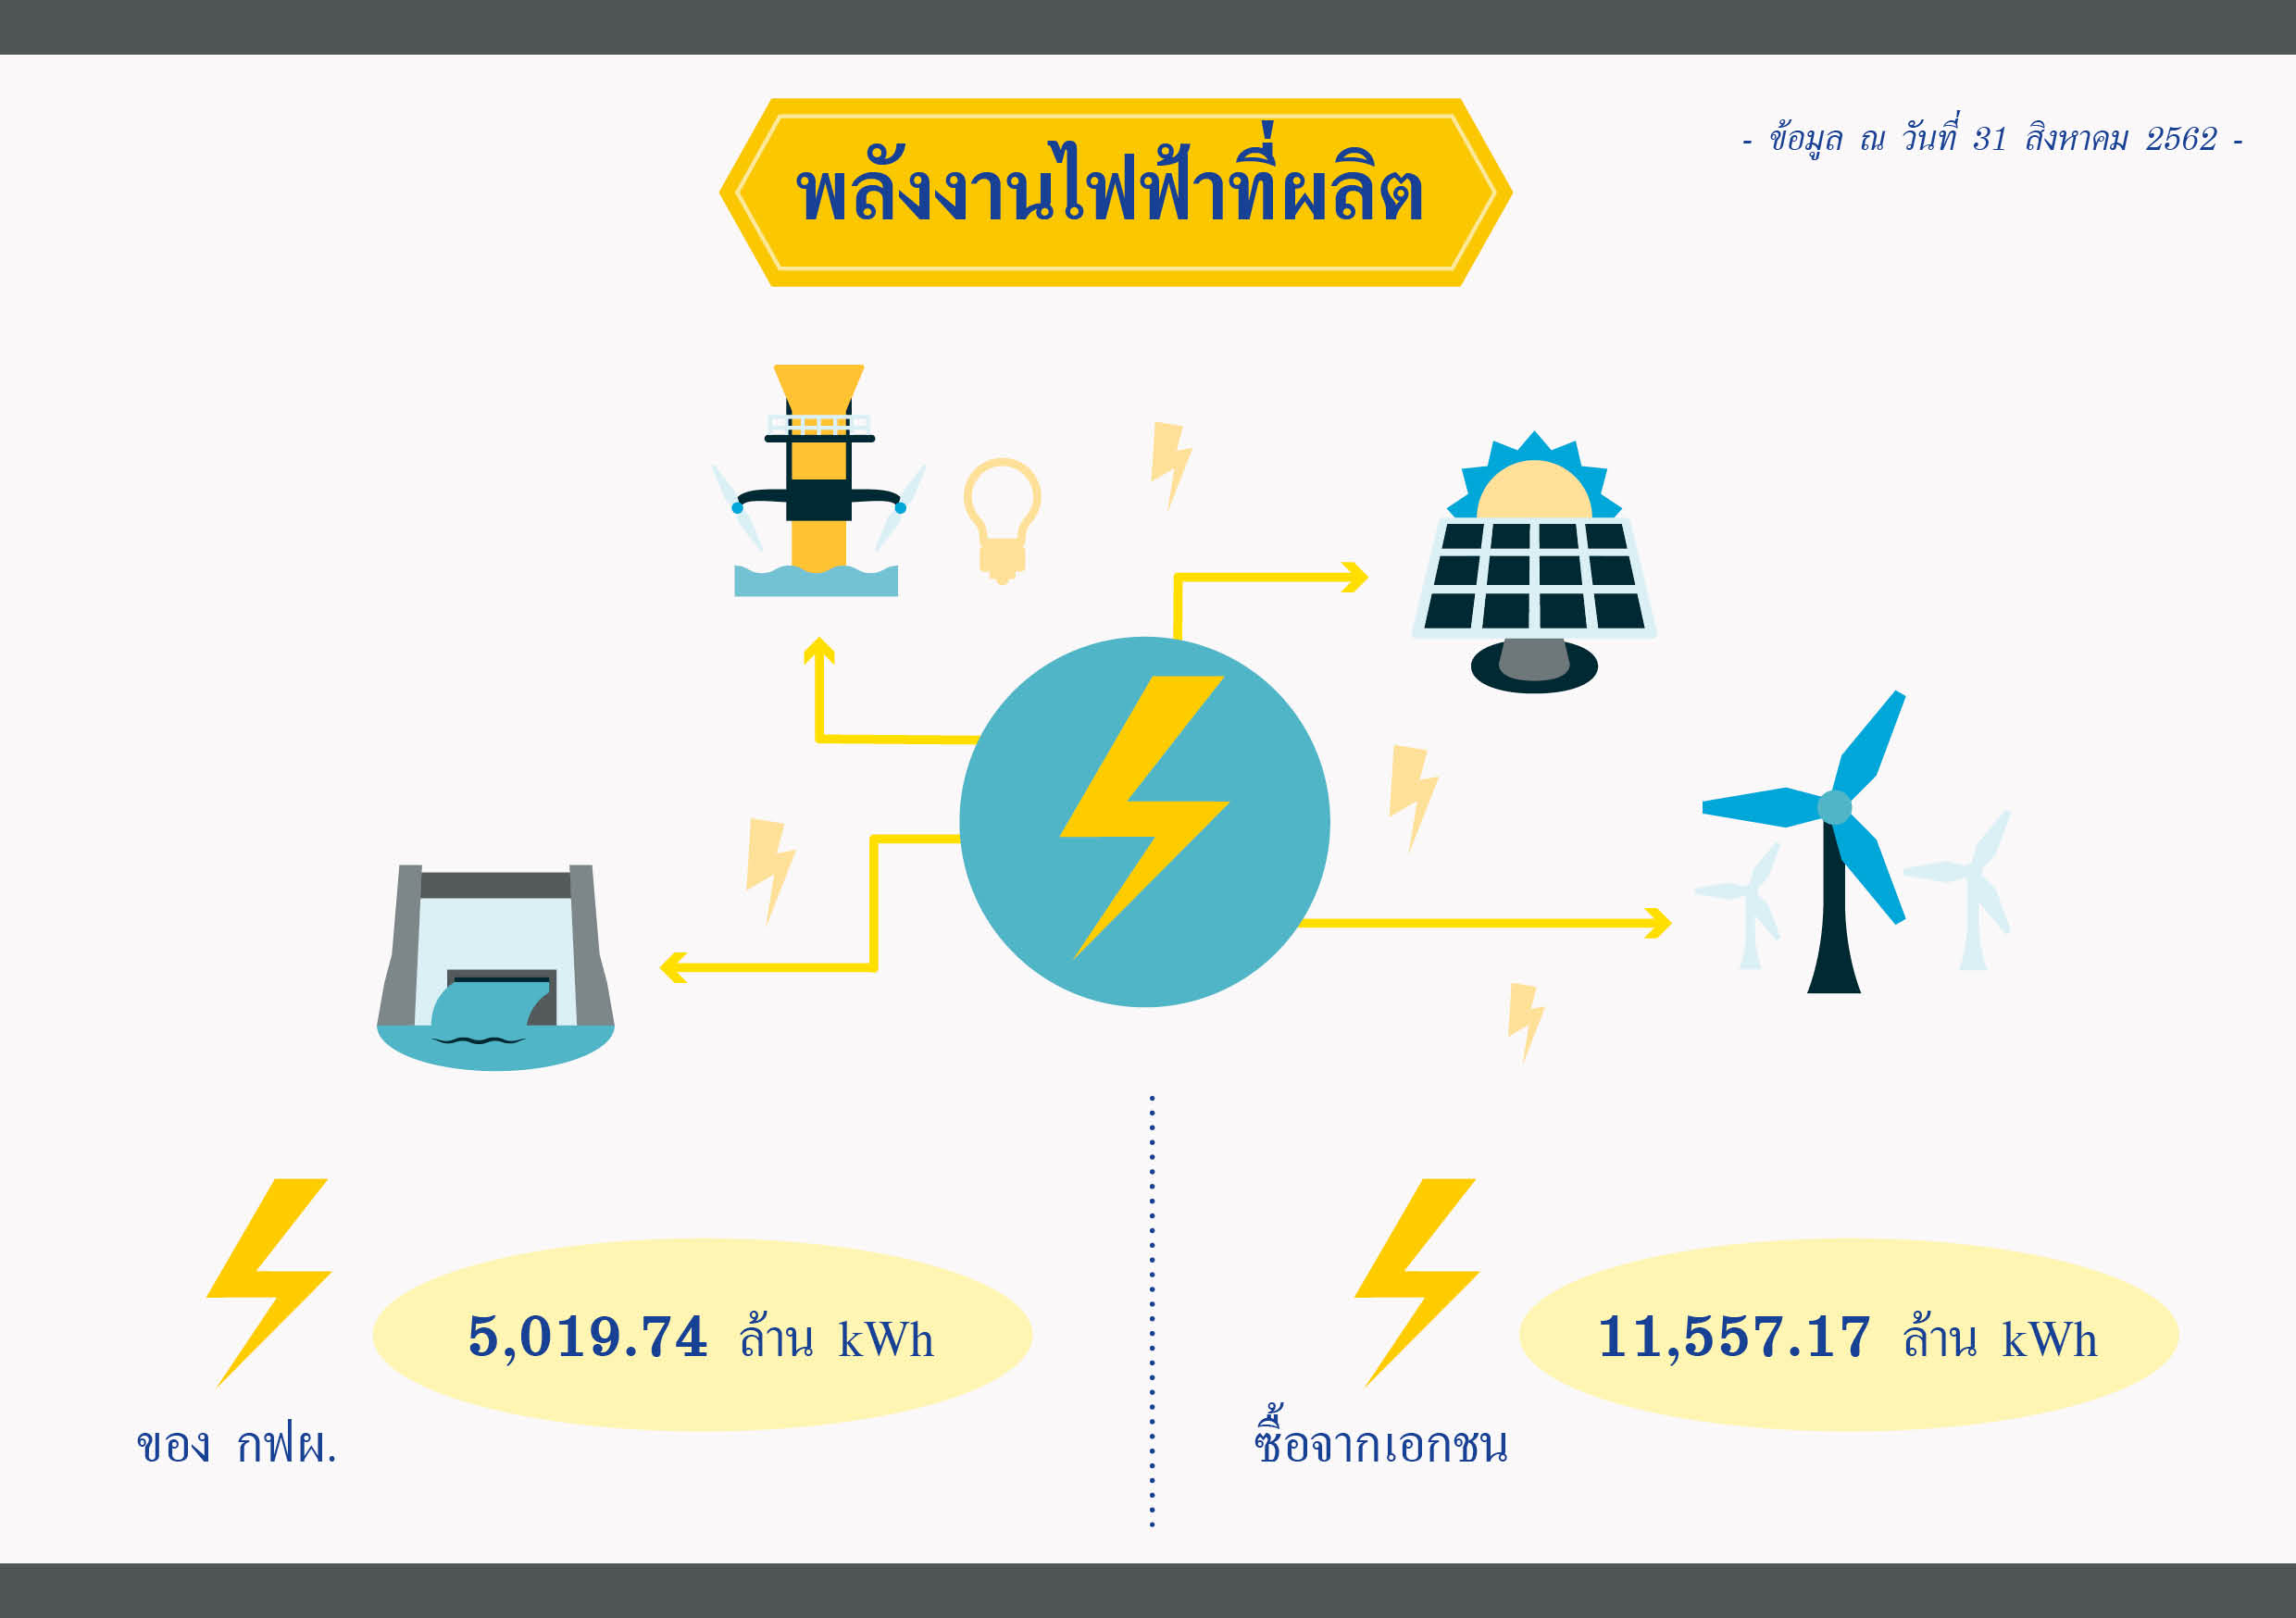 gross-energy-generation-and-purchase_2019-08